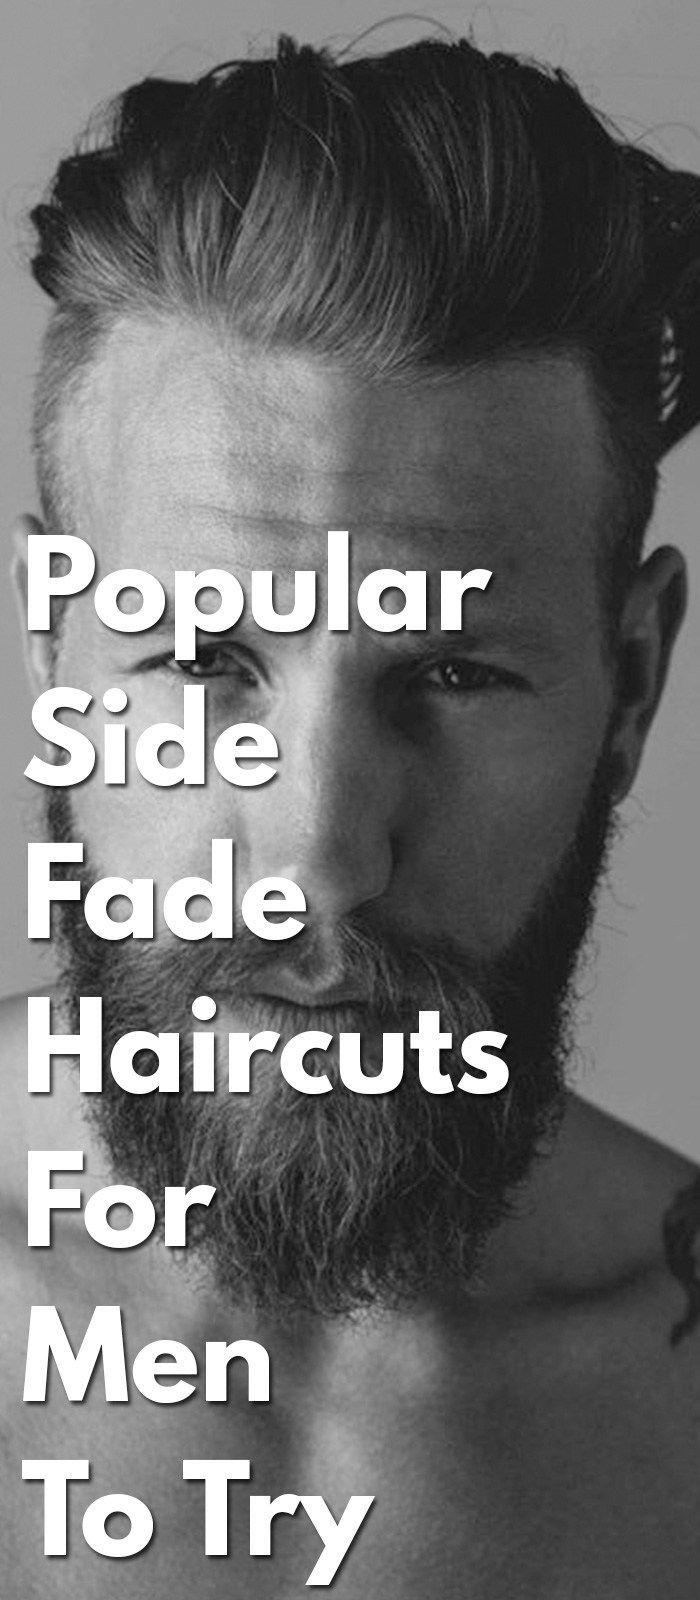 Side fade haircut images u pictures for men haircut pinterest